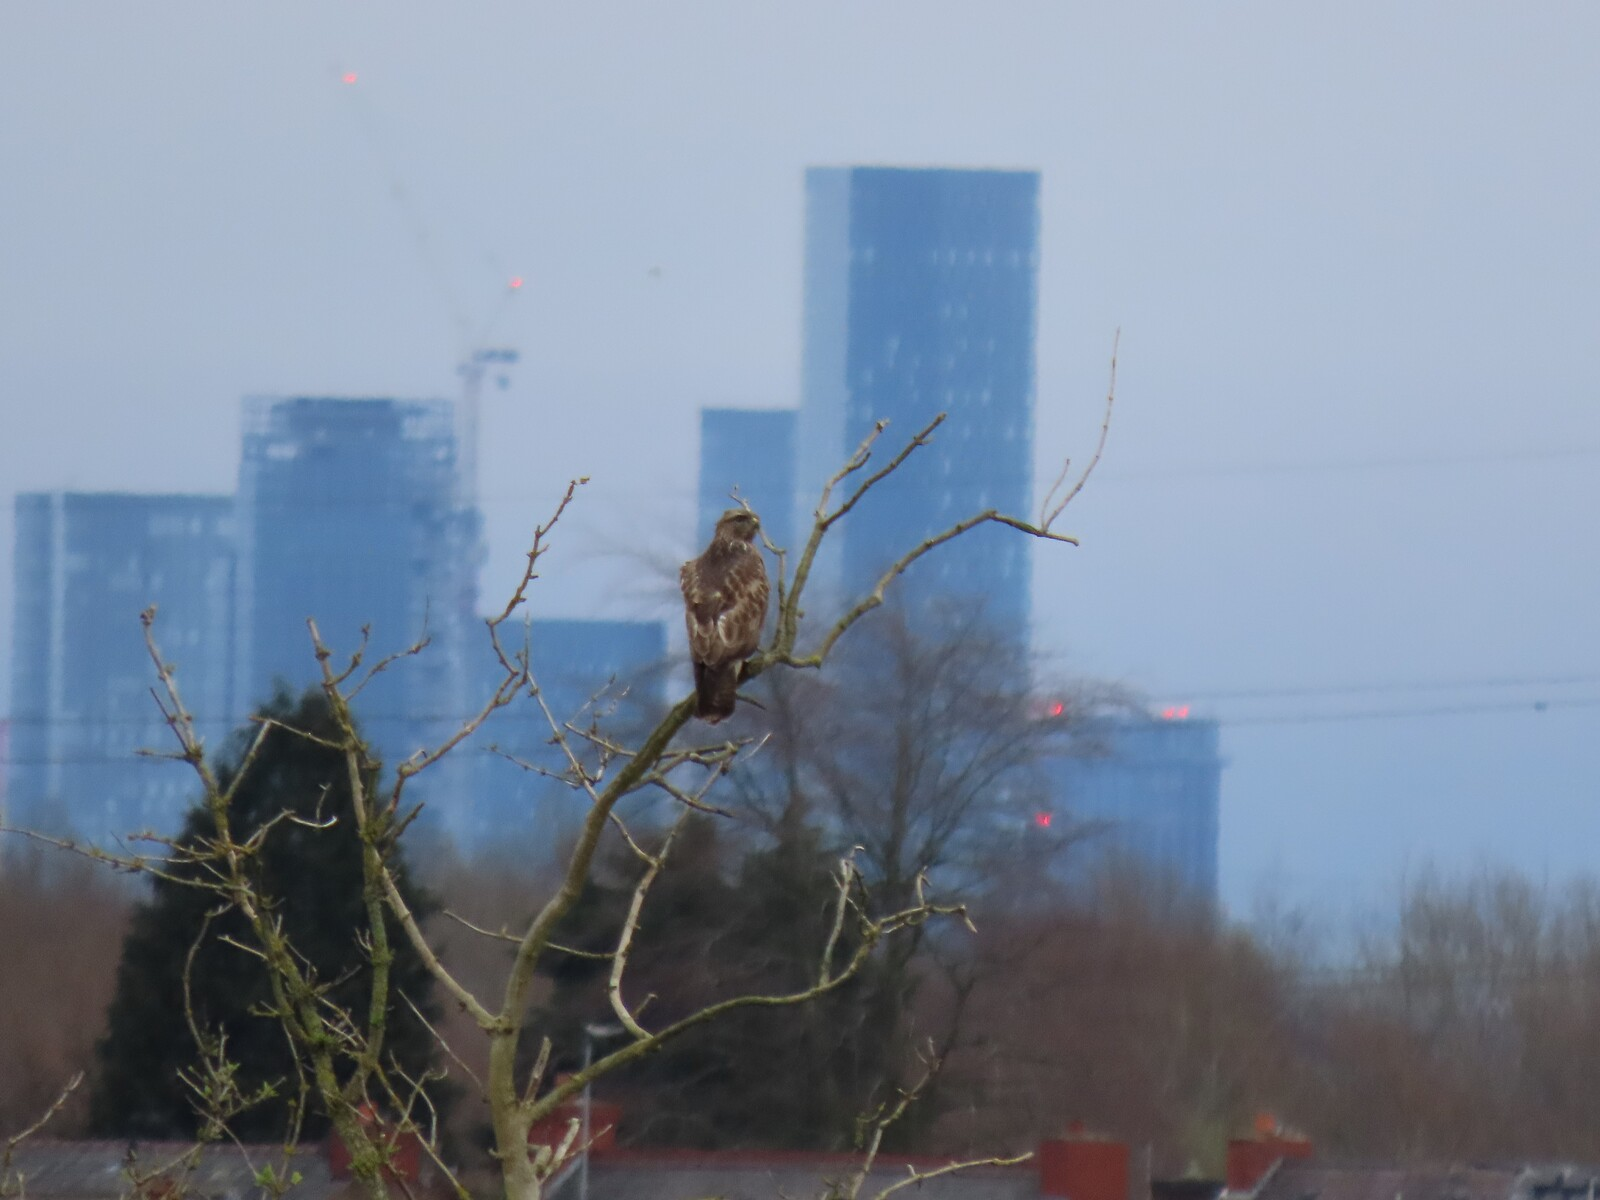 Buzzard in tree with Manchester skyline in background